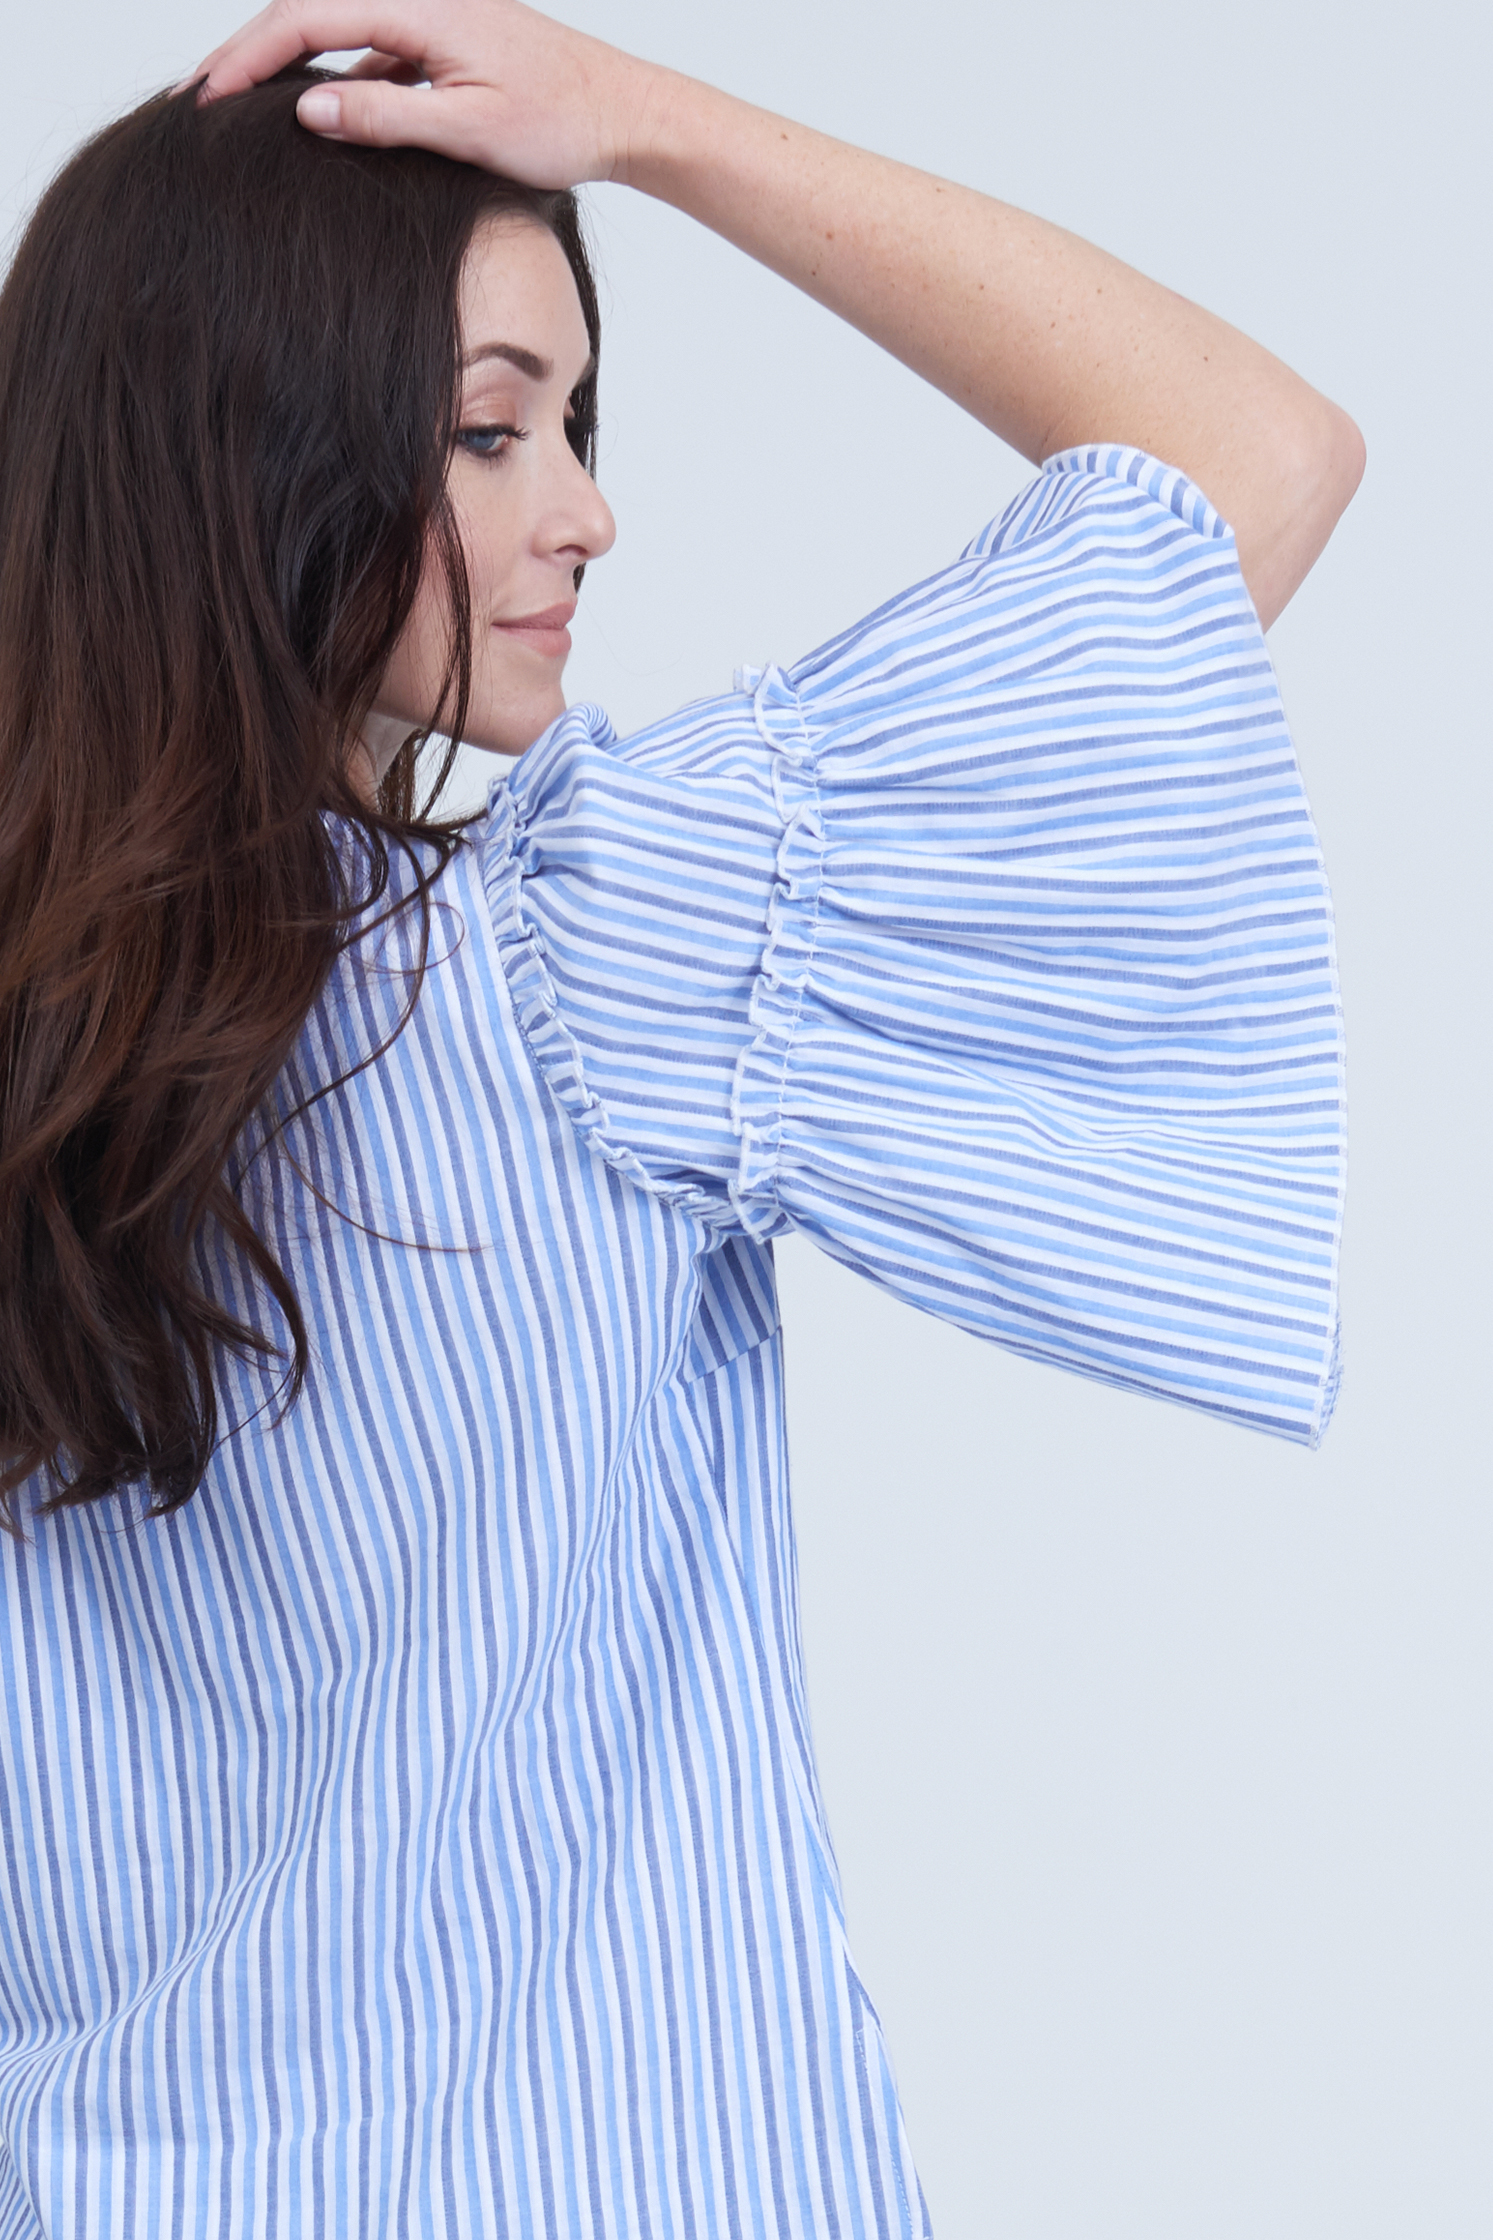 seven7 jeans striped peplum sleeve top